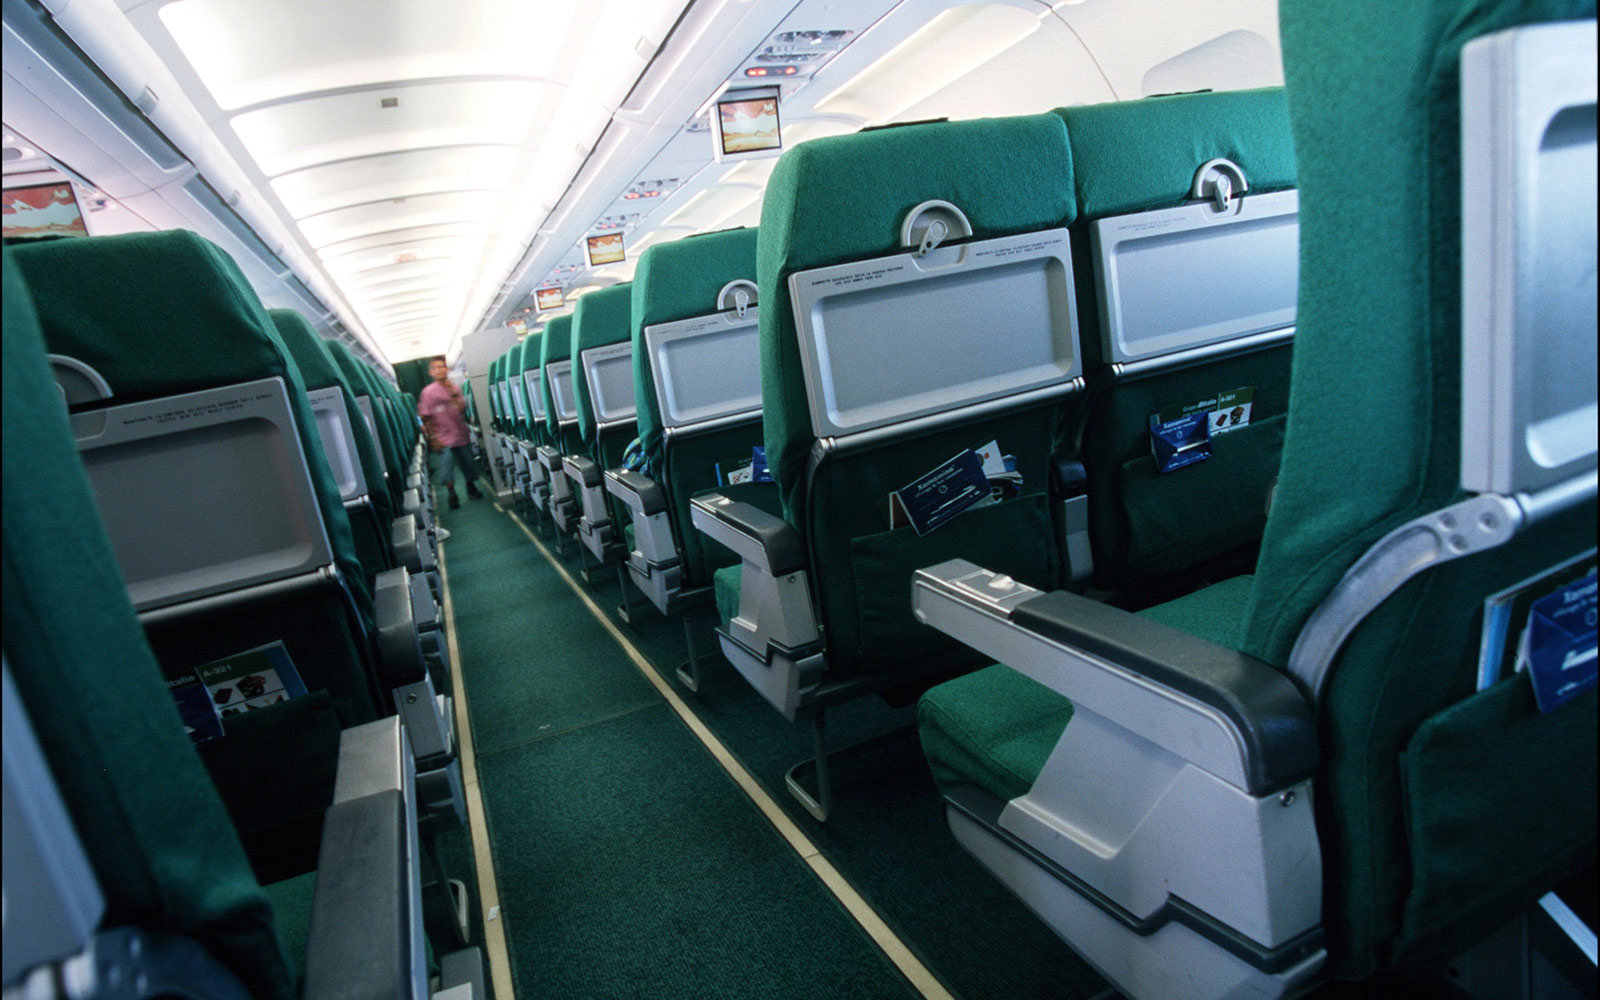 The World's Worst Airlines for Customer Service